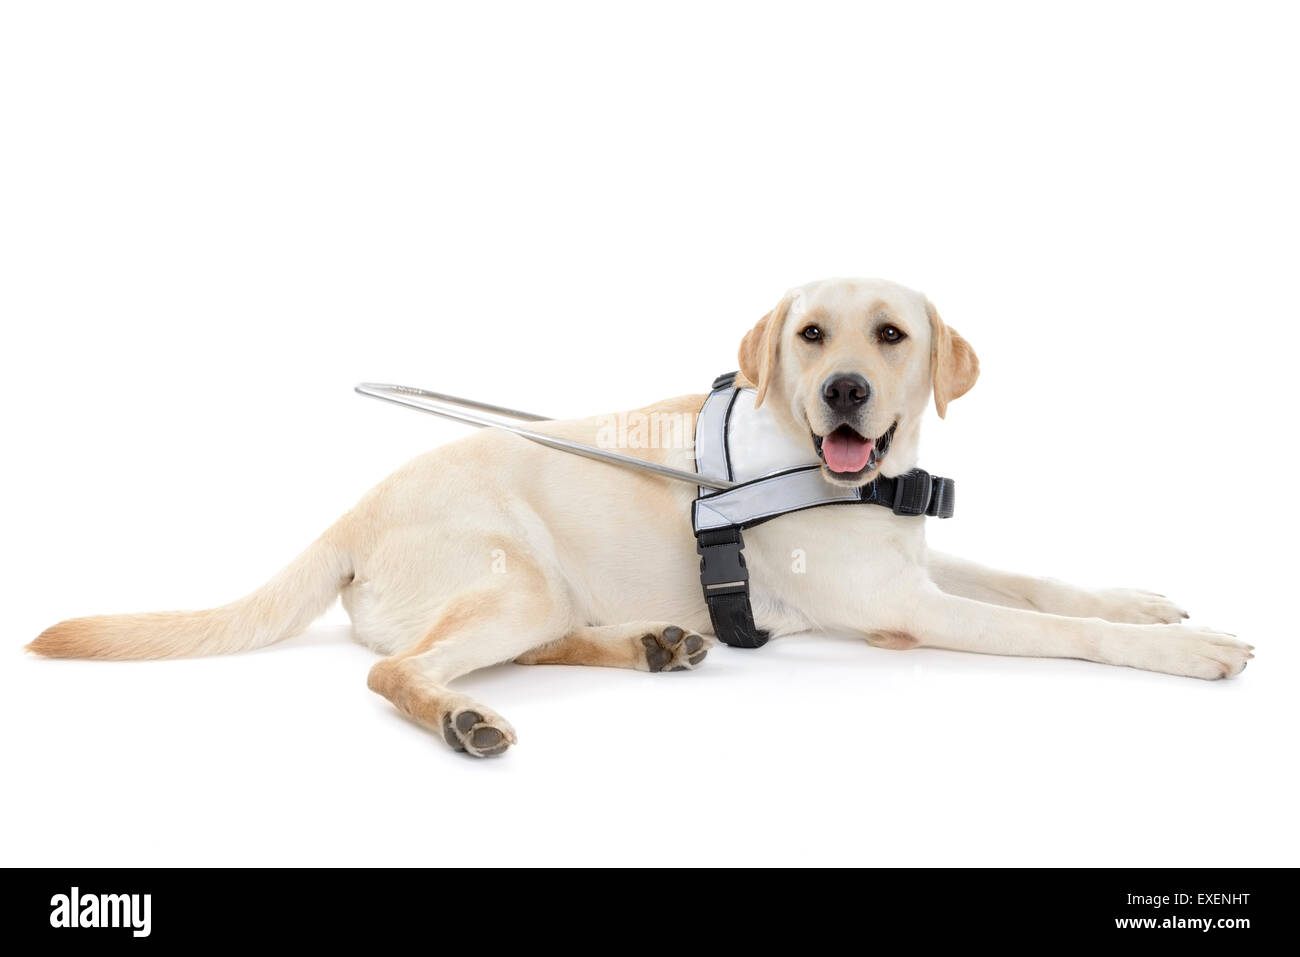 Guide dog for the blind cut out isolated on white background - Stock Image